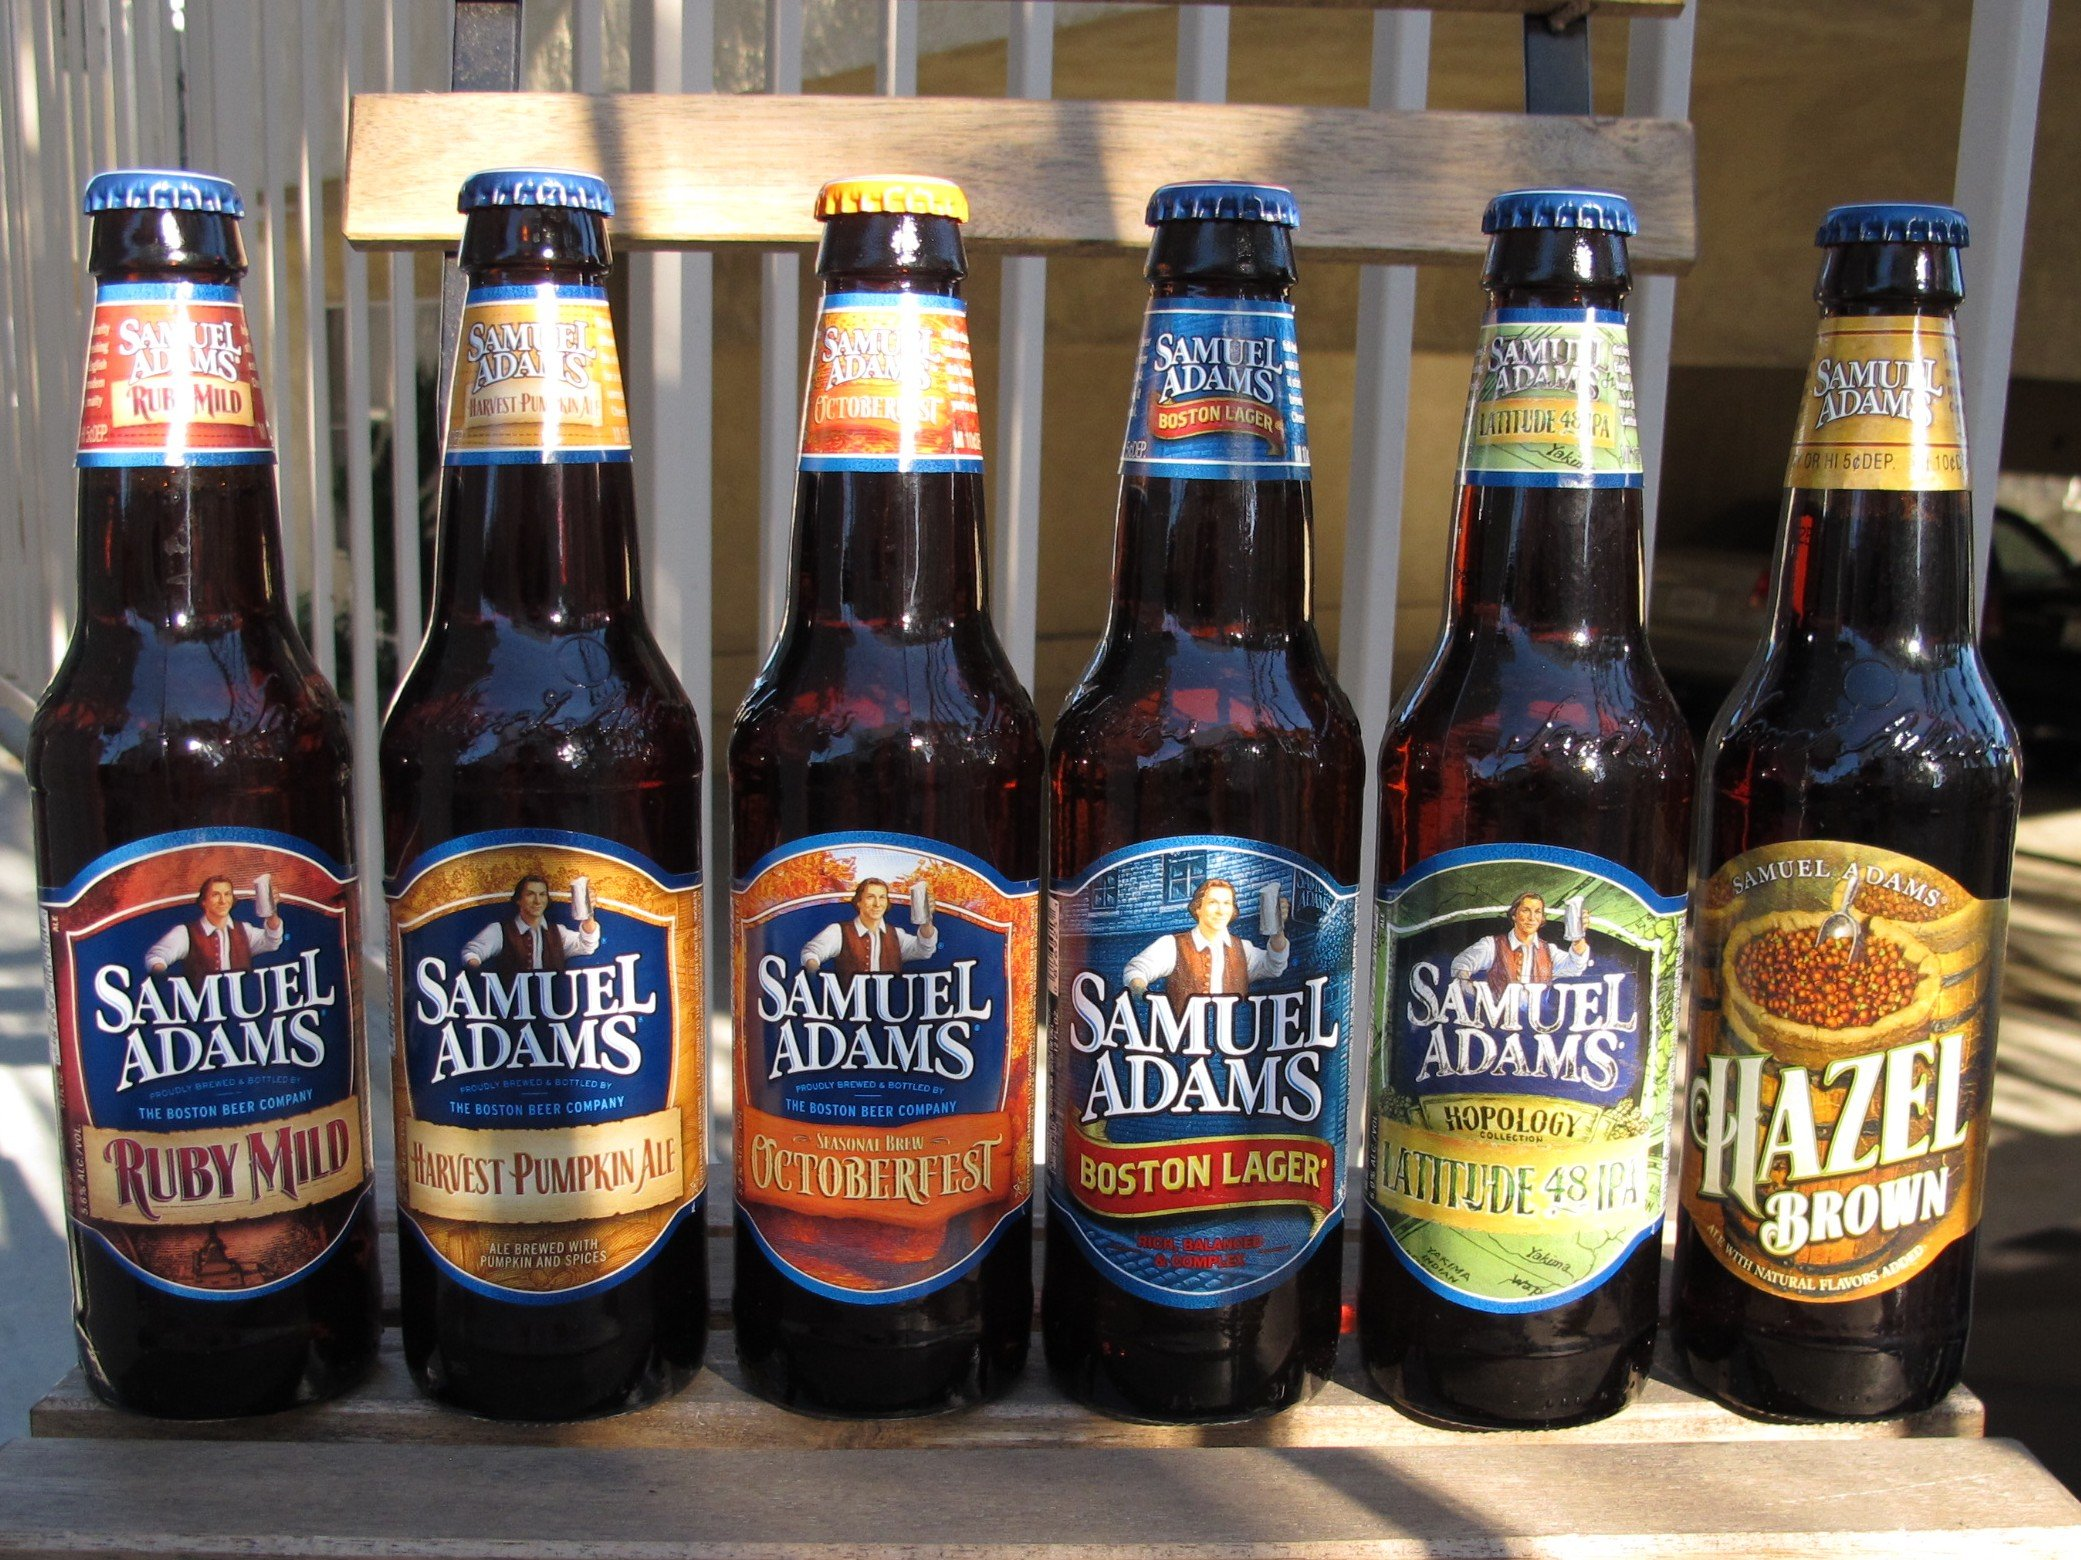 SAMUEL ADAMS BEER alcohol (3)